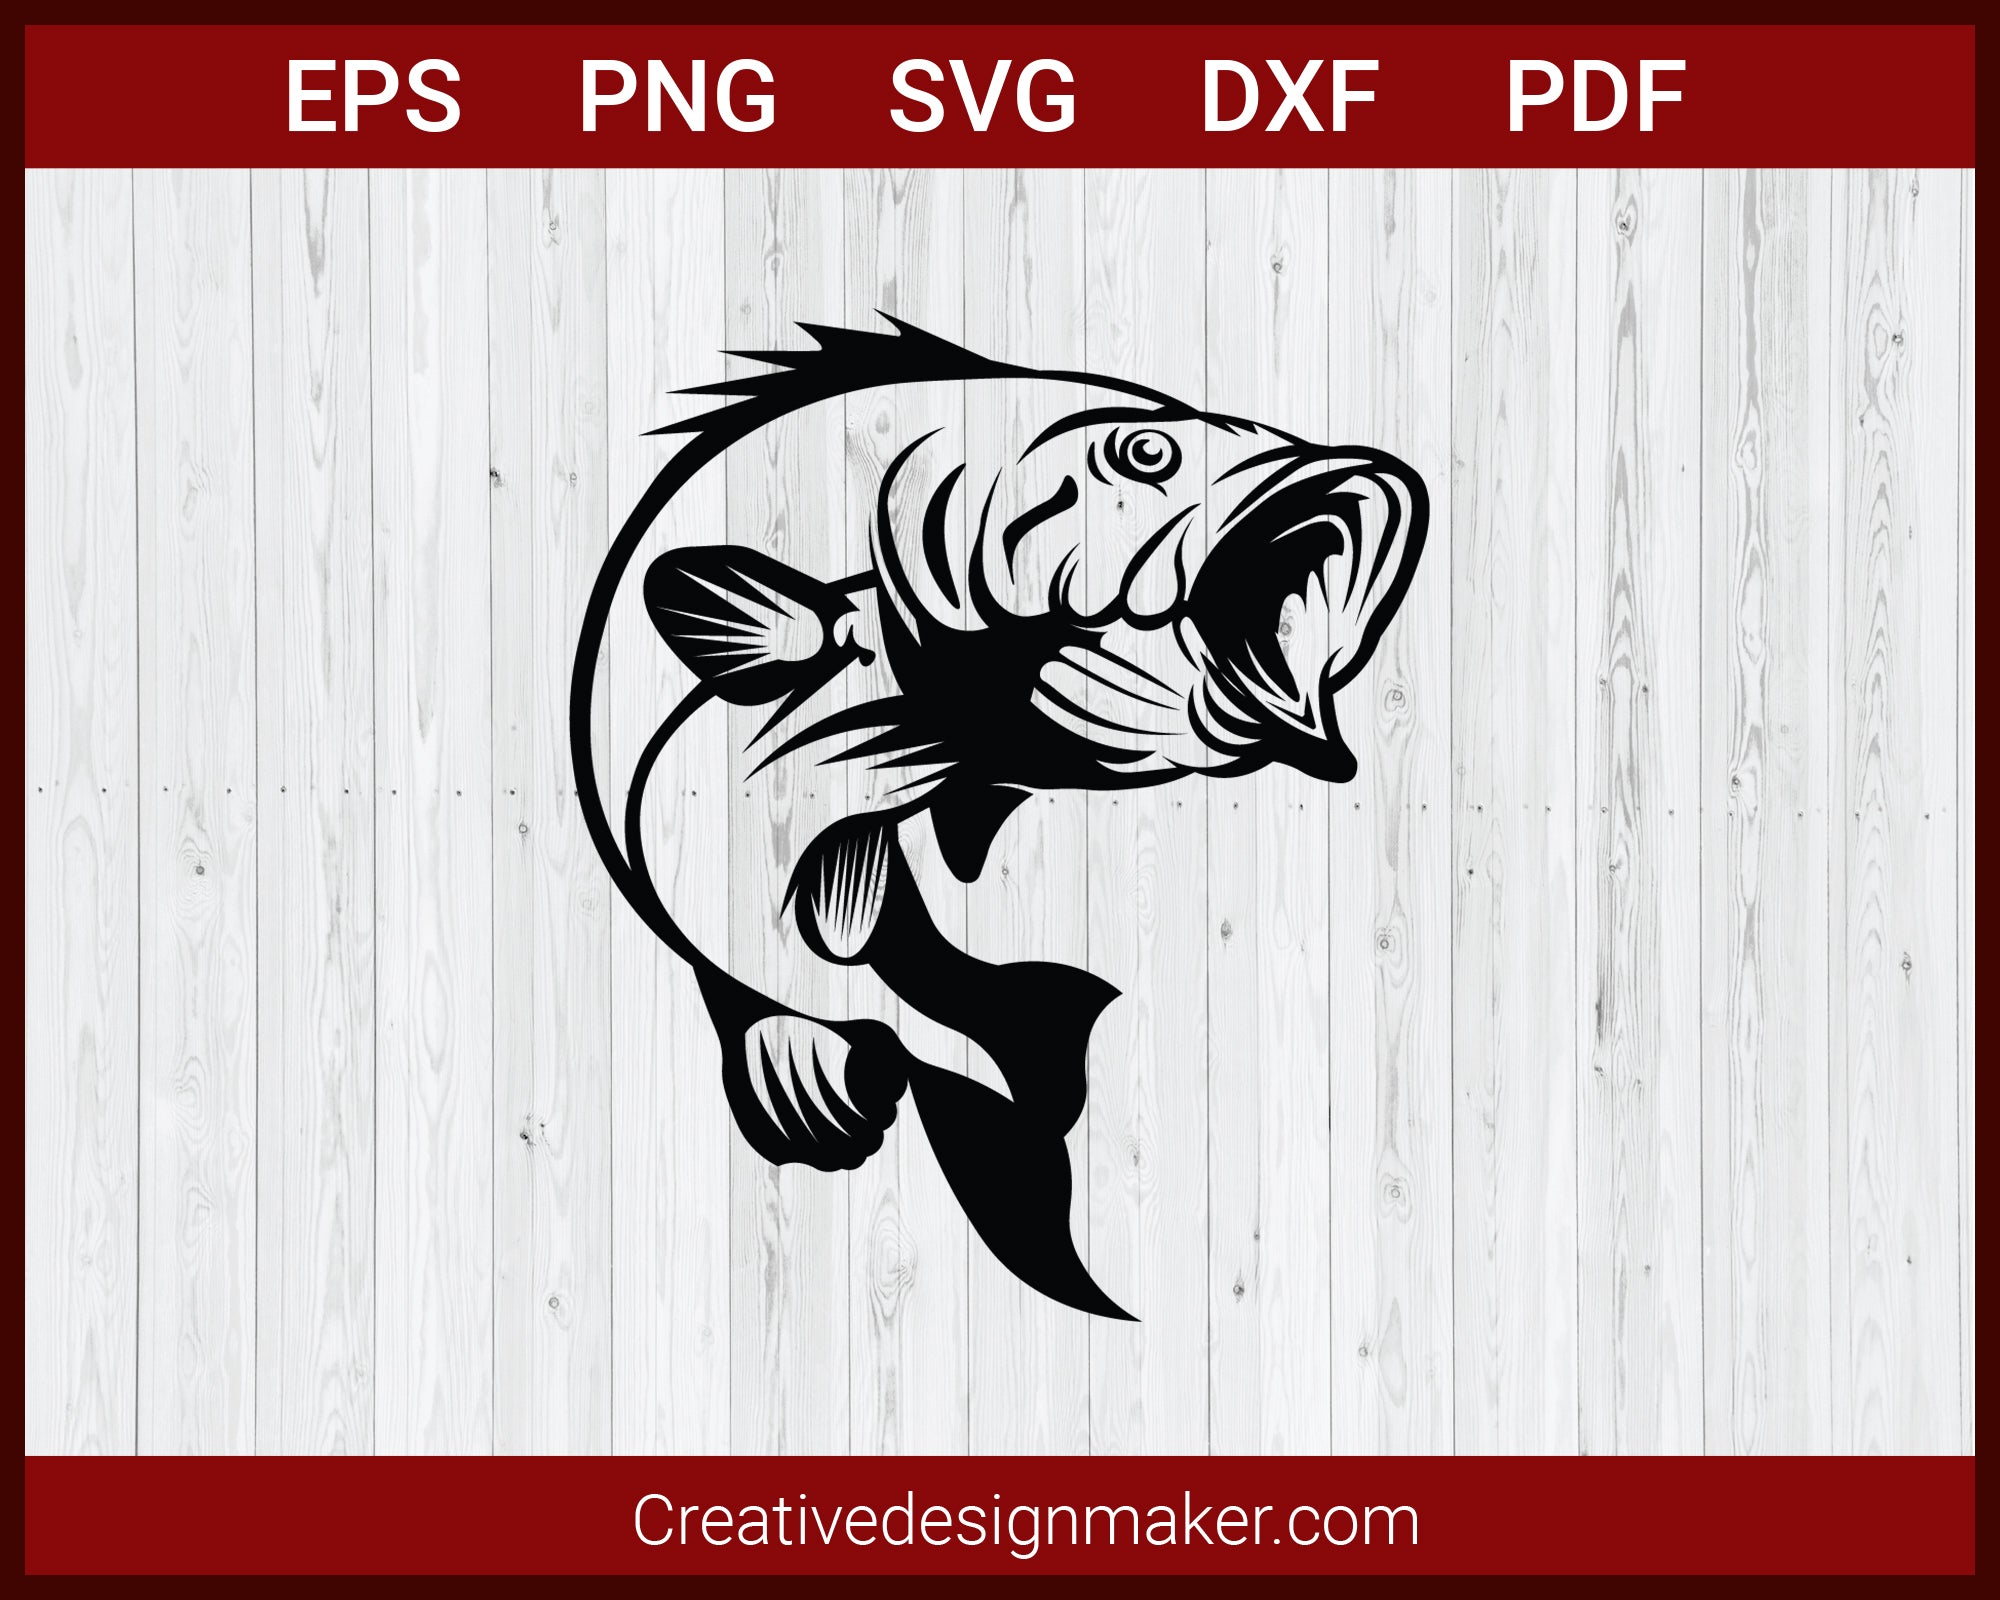 Download Bass Fishing Hunting Svg Cut File For Cricut Silhouette Creativedesignmaker